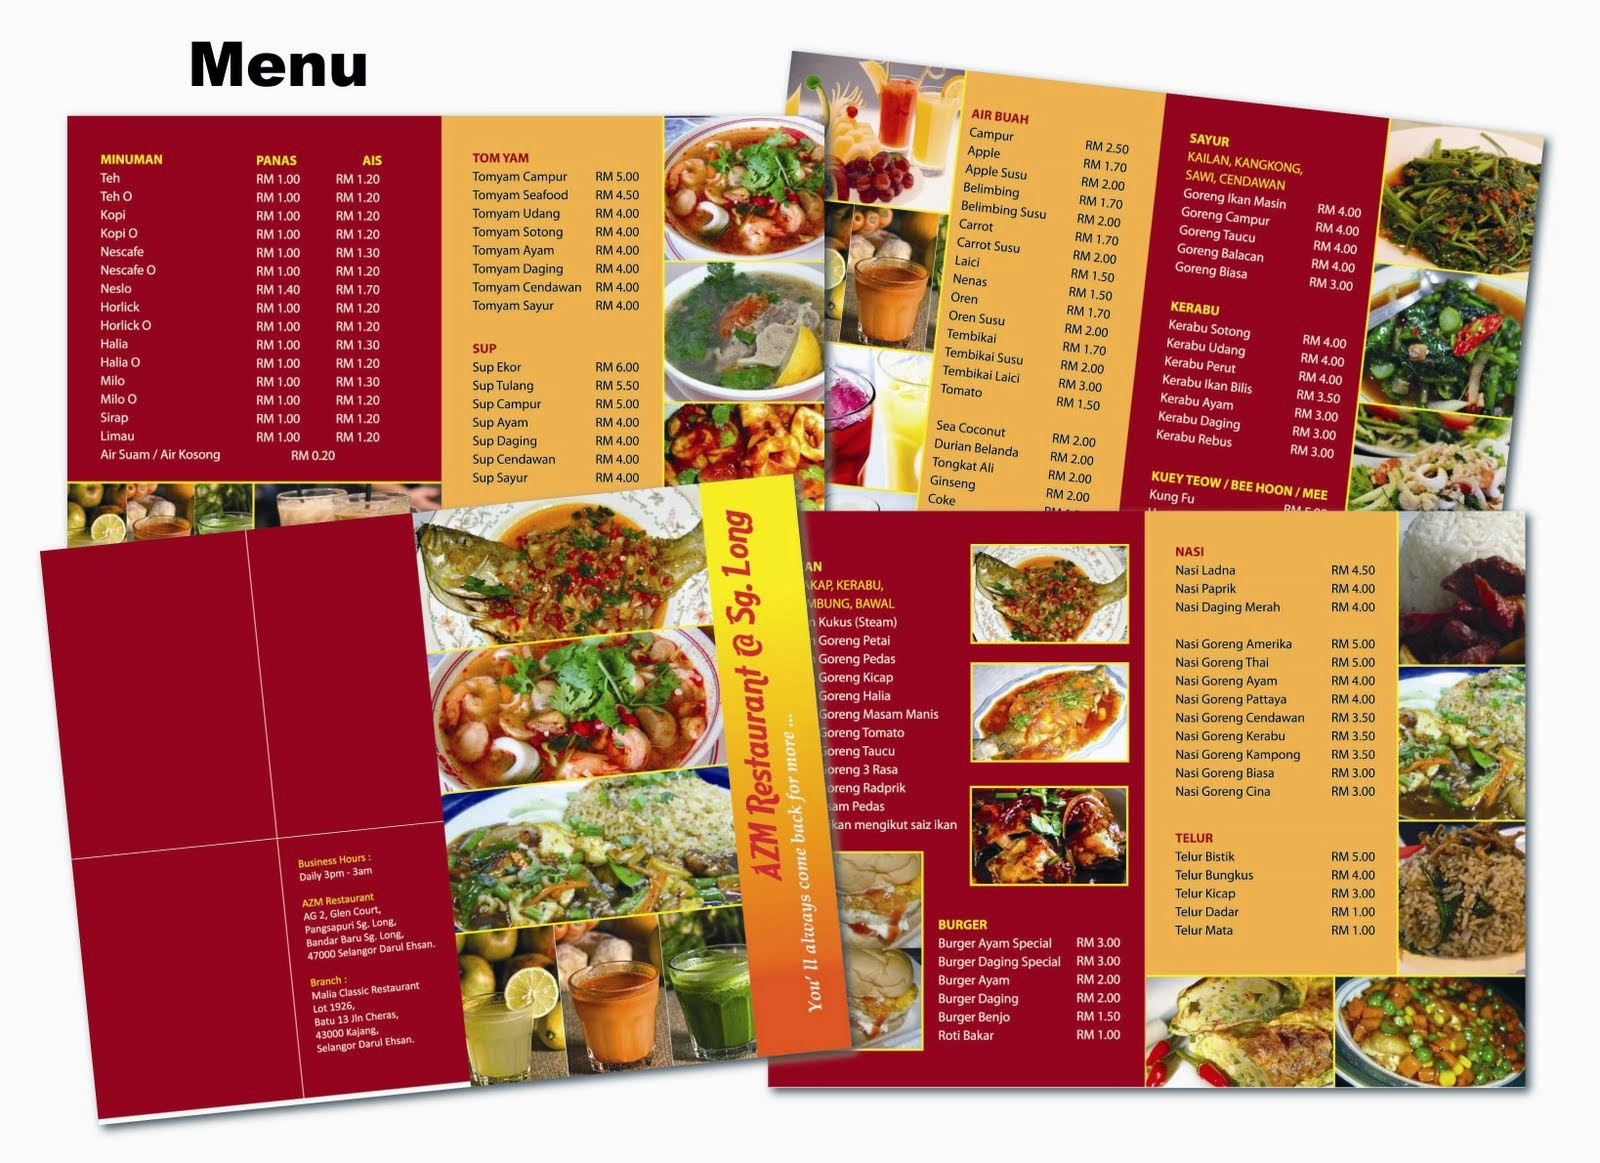 Beautiful restaurant menu designs inspiration design for Free menu design templates